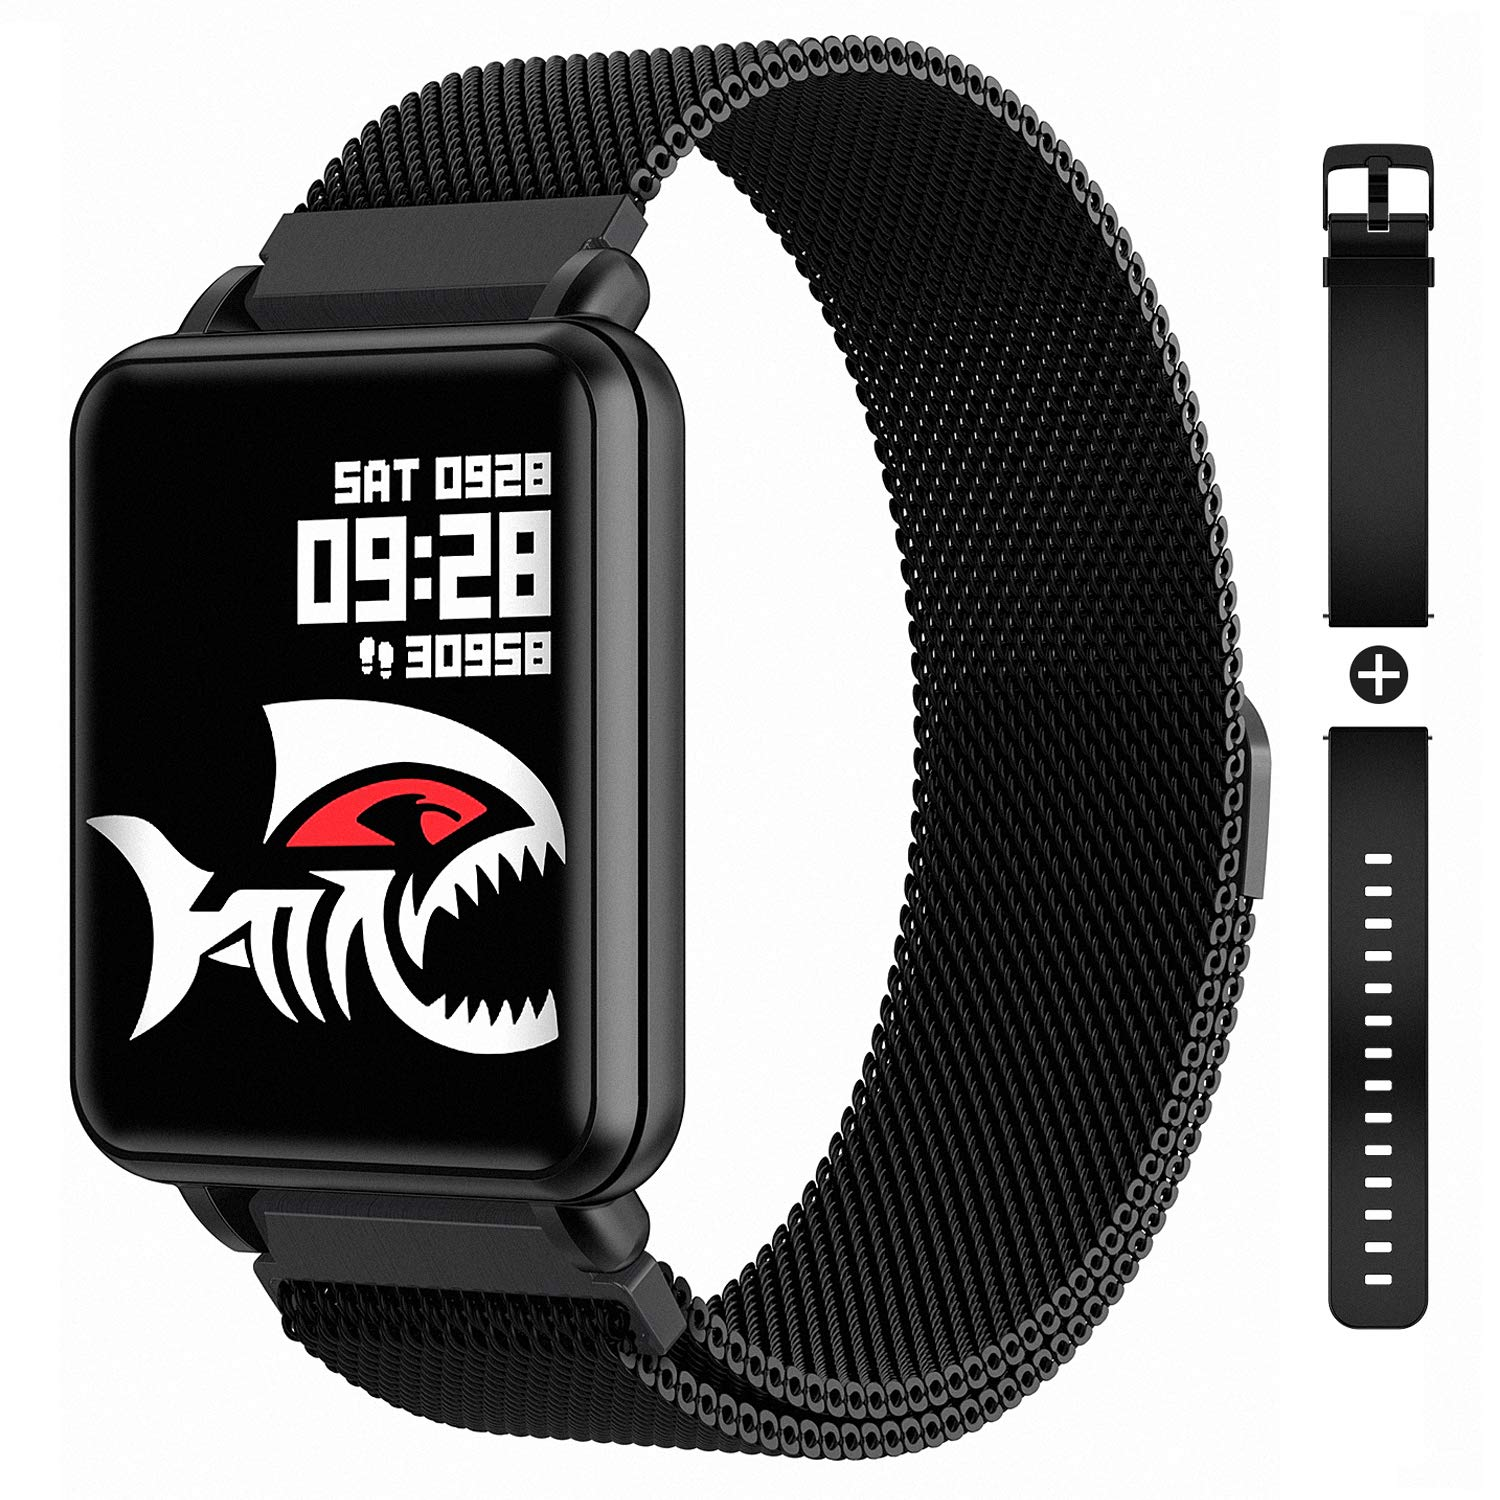 COLMI Smart Watch Full Touchscreen Smartwatch for Women Men, IP68 Waterproof Fitness Tracker Compatible with iPhone Andriod, Bluetooth Pedometer, Heart Rate and Blood Pressure Monitor by COLMI